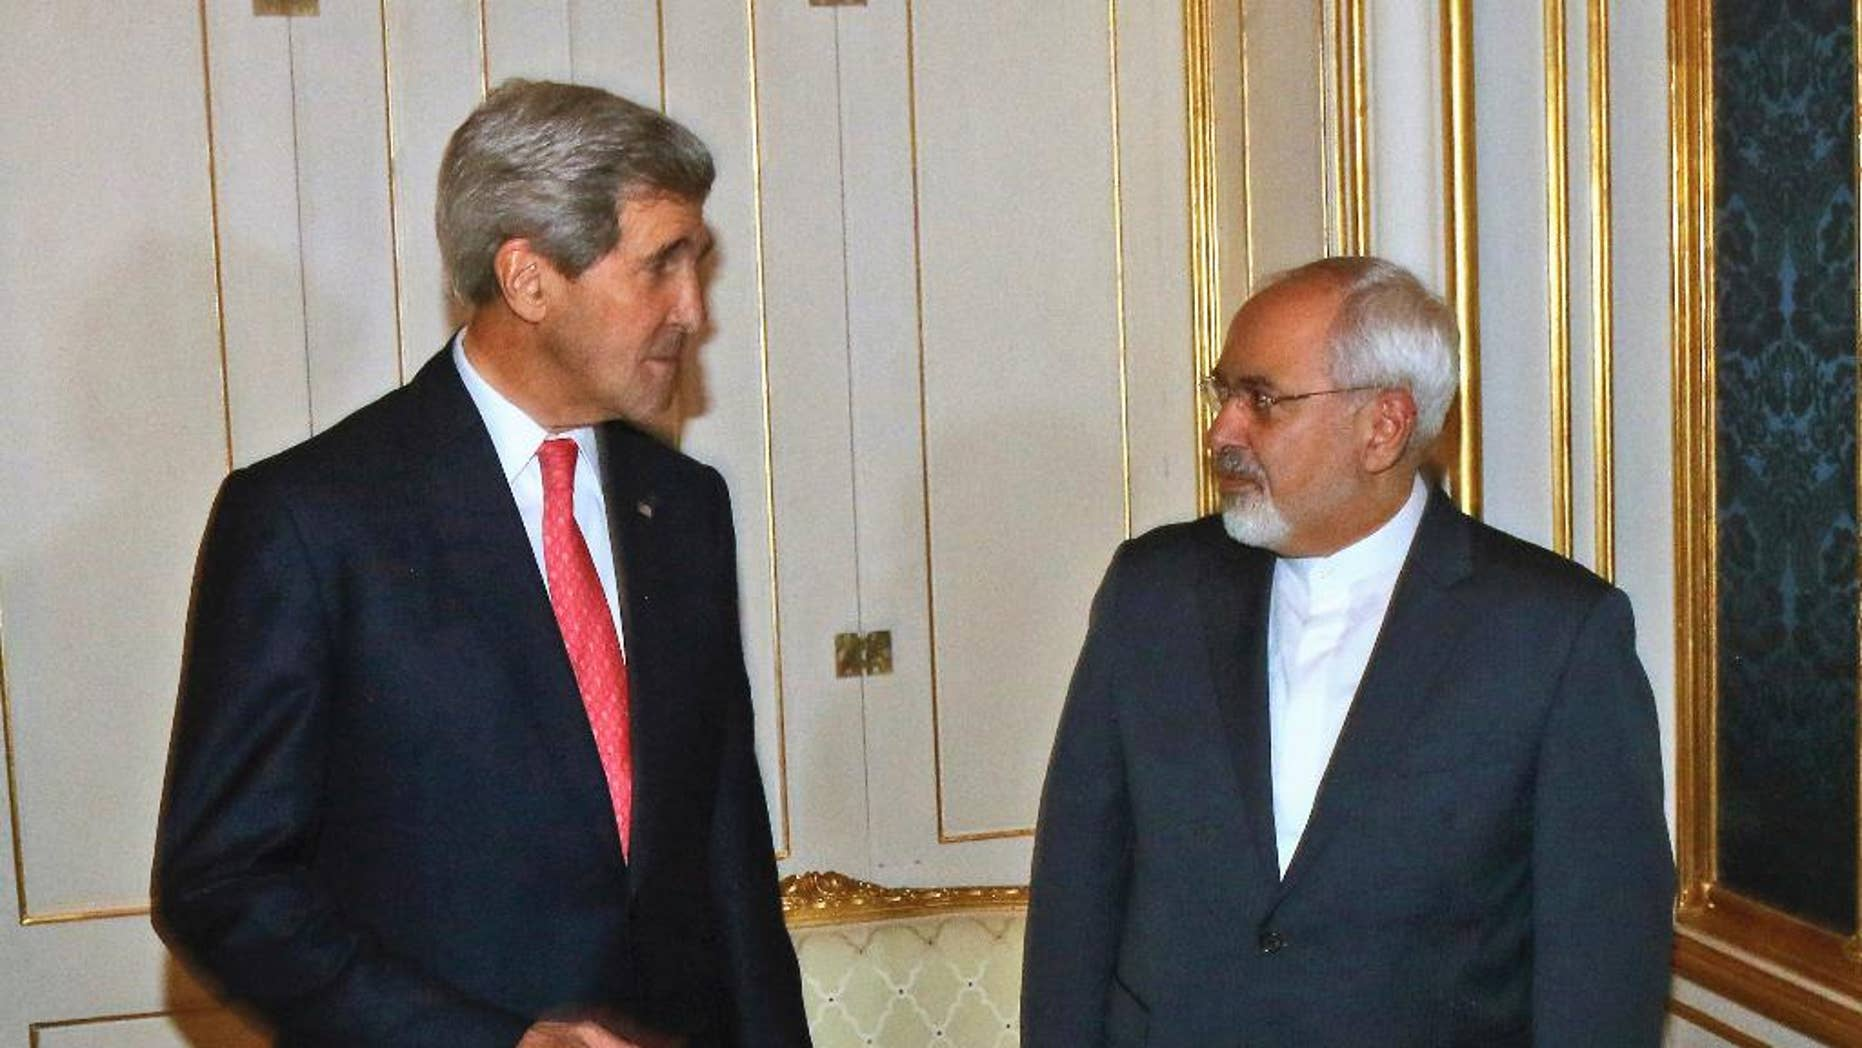 FILE - In this Nov. 23, 2014 file-pool photo, Secretary of State John Kerry talks with Iranian Foreign Minister Mohammad Javad Zarif in Vienna, Austria. Kerry plans to see Zarif this week amid Iranian complaints that it's not getting the sanctions relief it deserves under last year's landmark nuclear deal. (AP Photo/Ronald Zak, File-Pool)